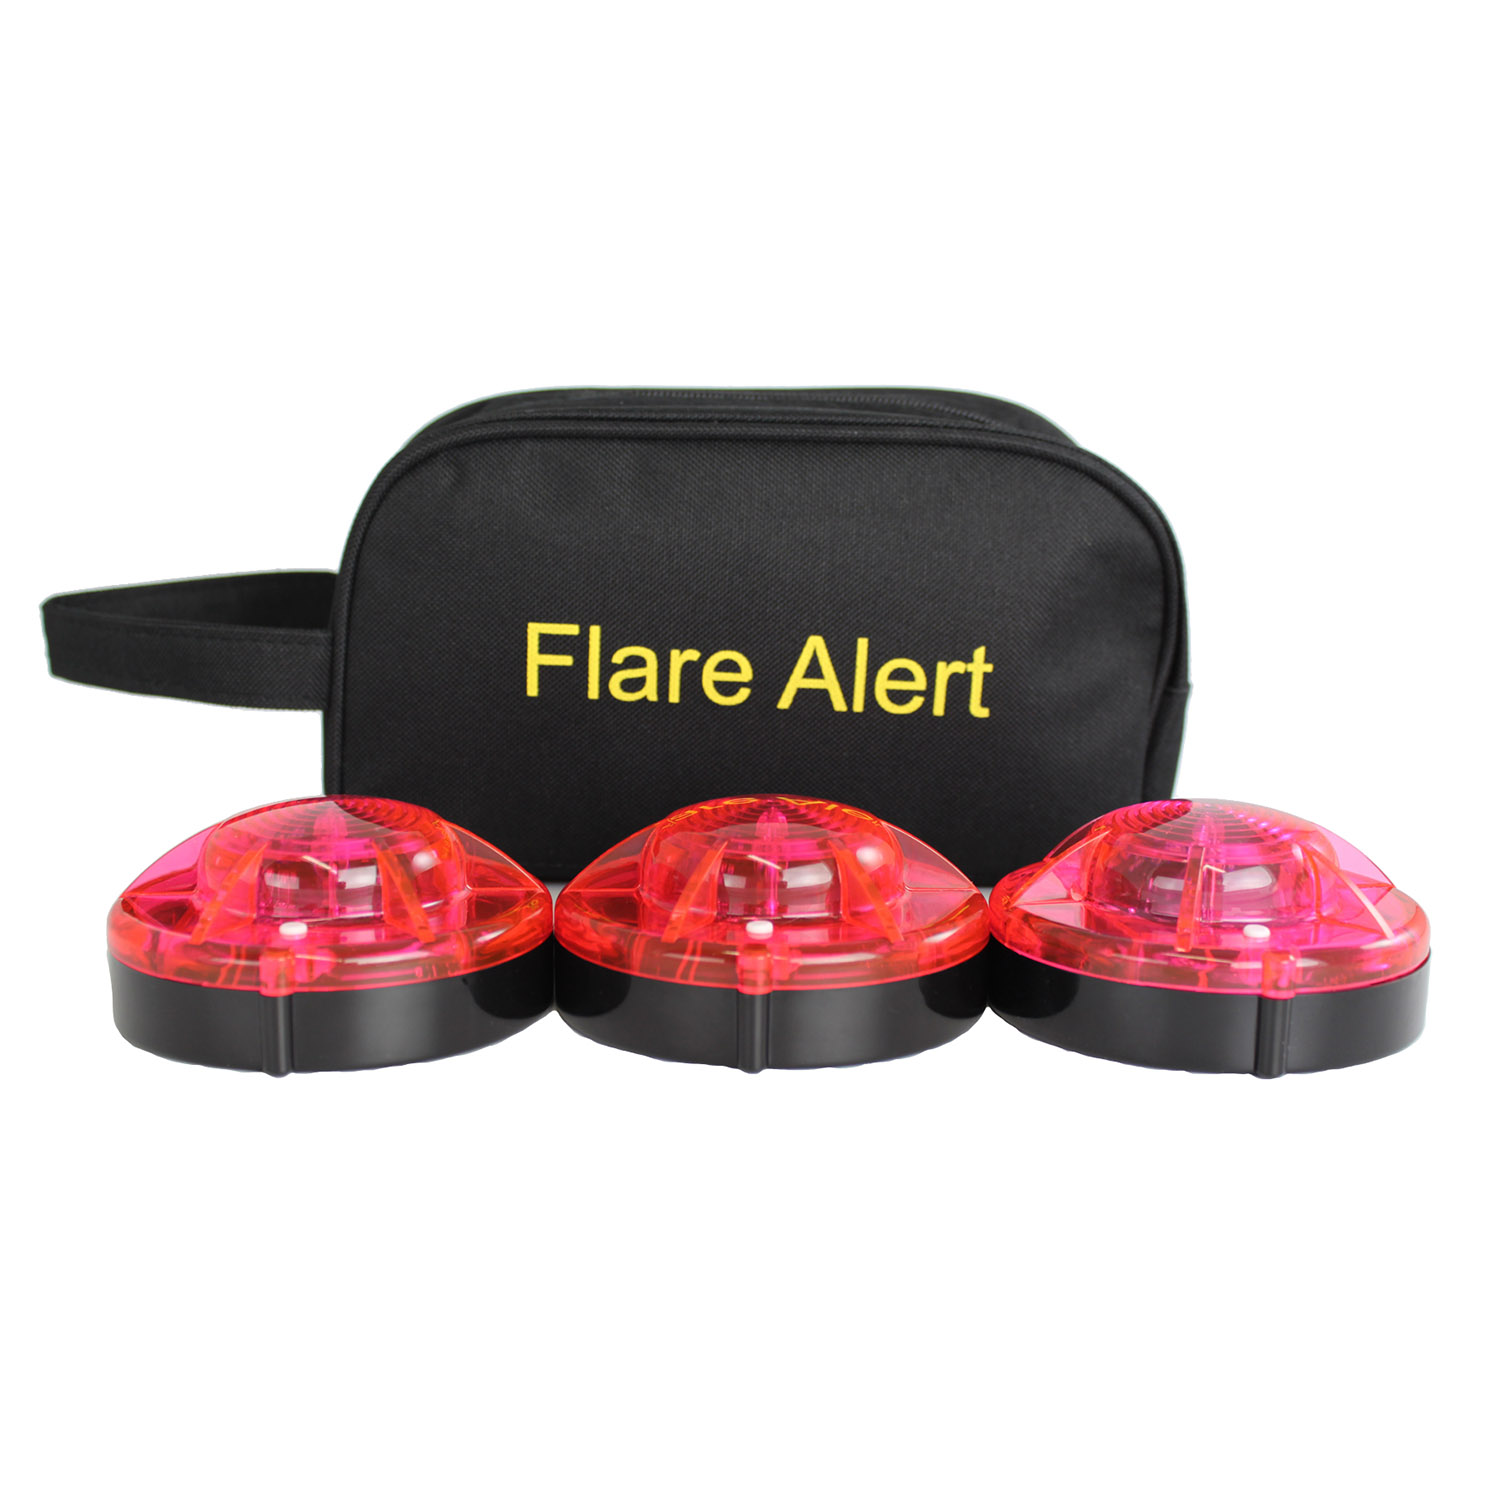 FlareAlert Small LED Beacon Flare Kit with Batteries and Cas